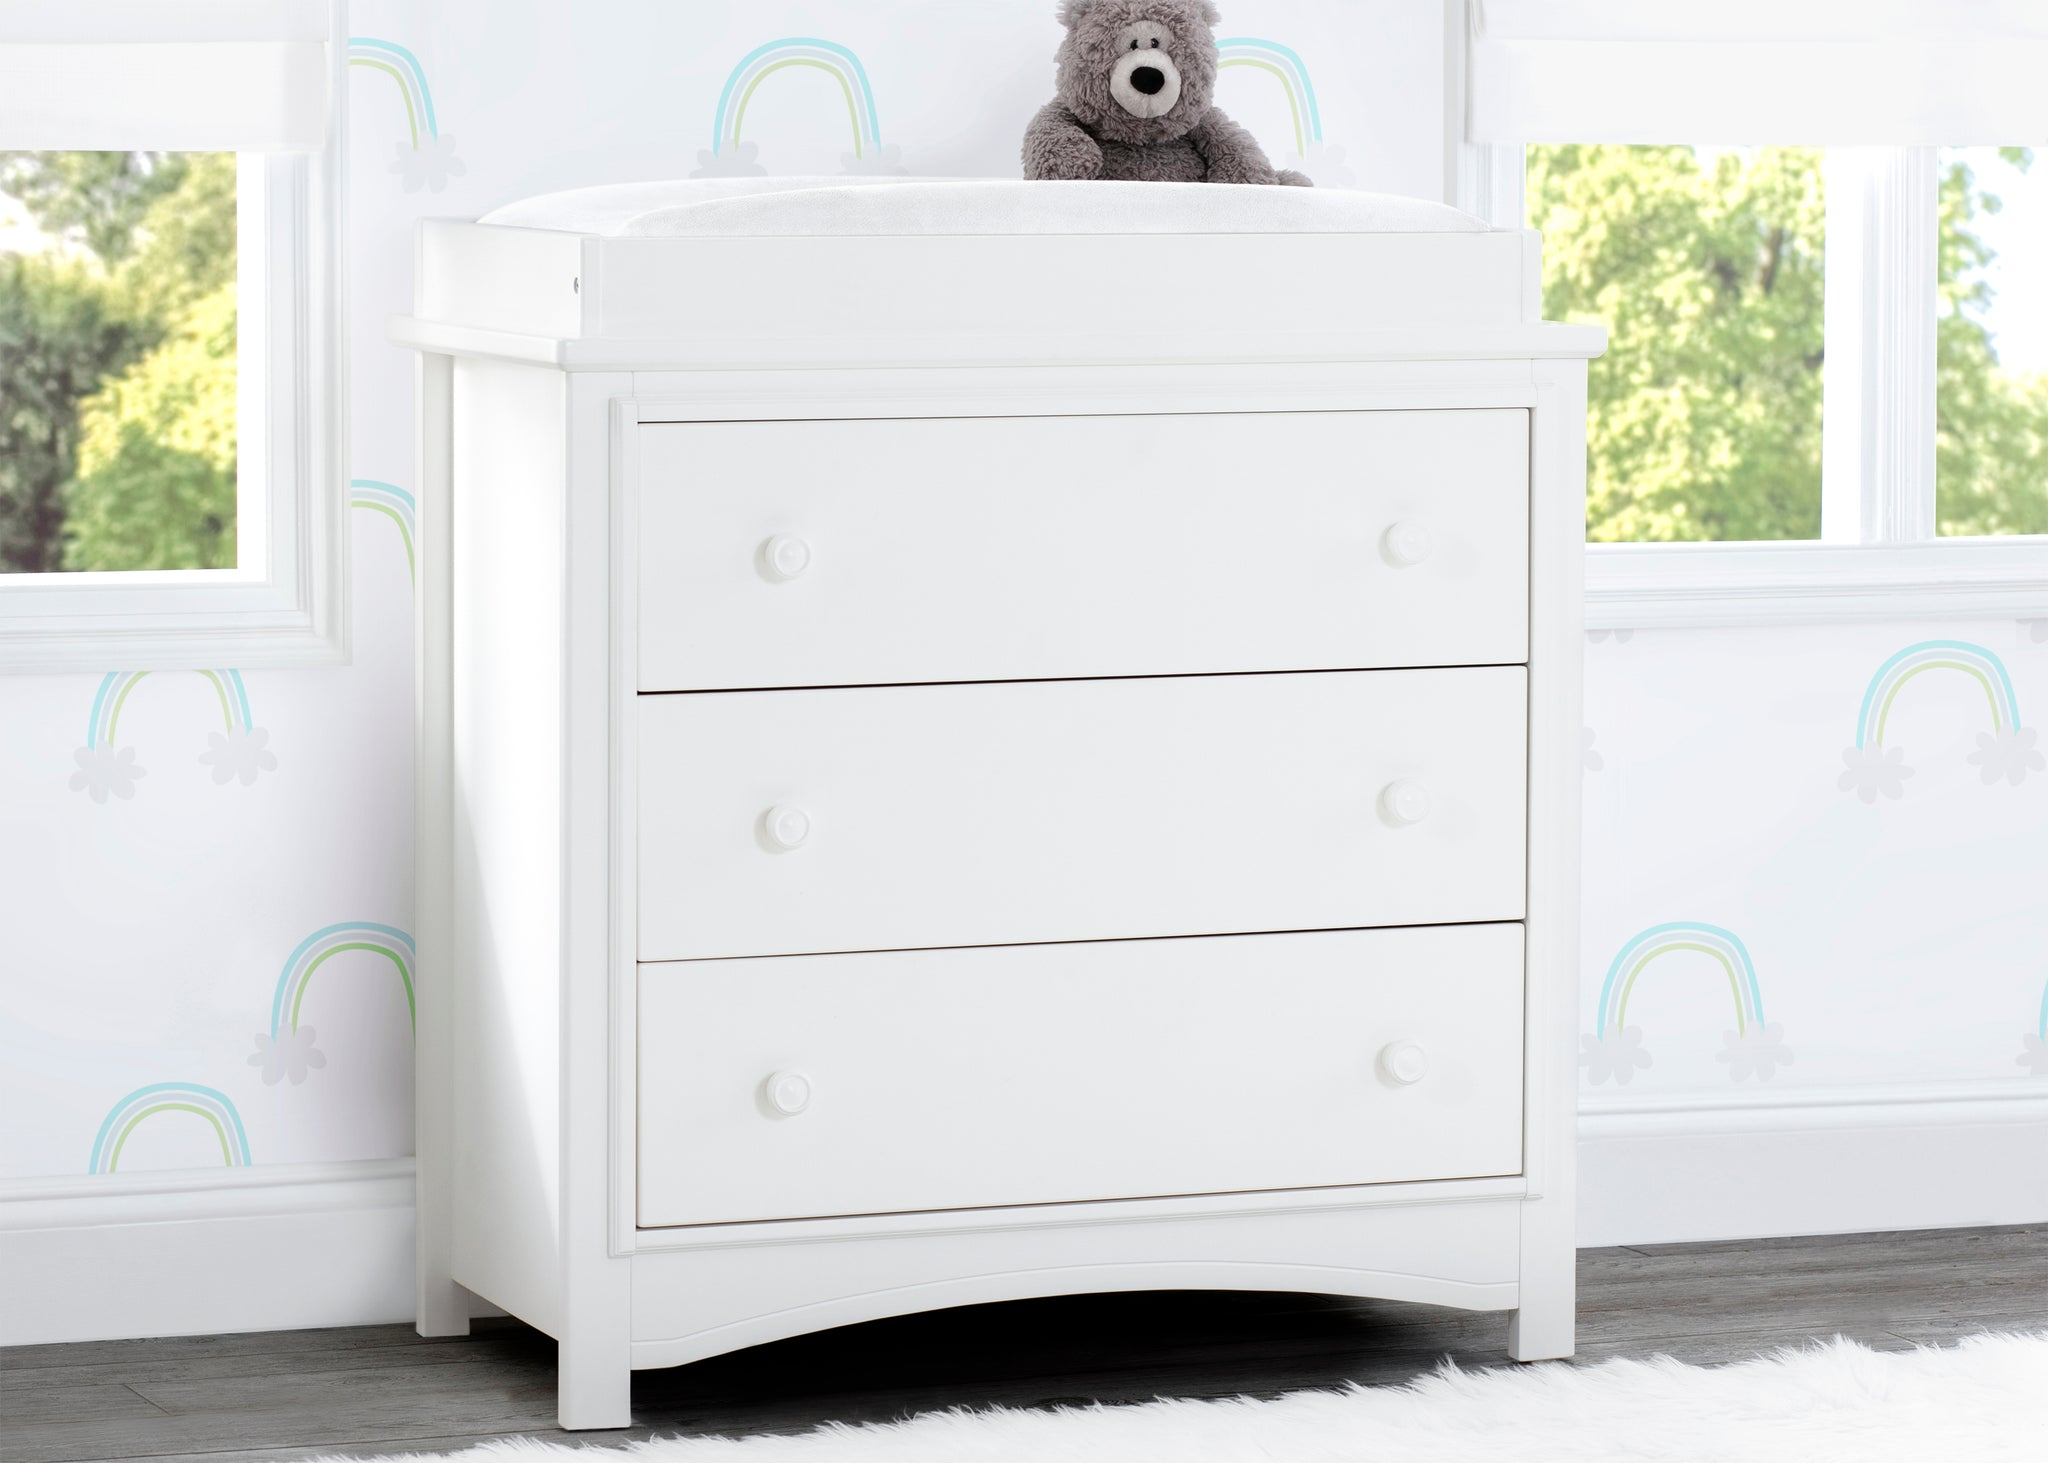 Delta Children Bianca White (130) Perry 3 Drawer Dresser with Changing Top, Hangtag View